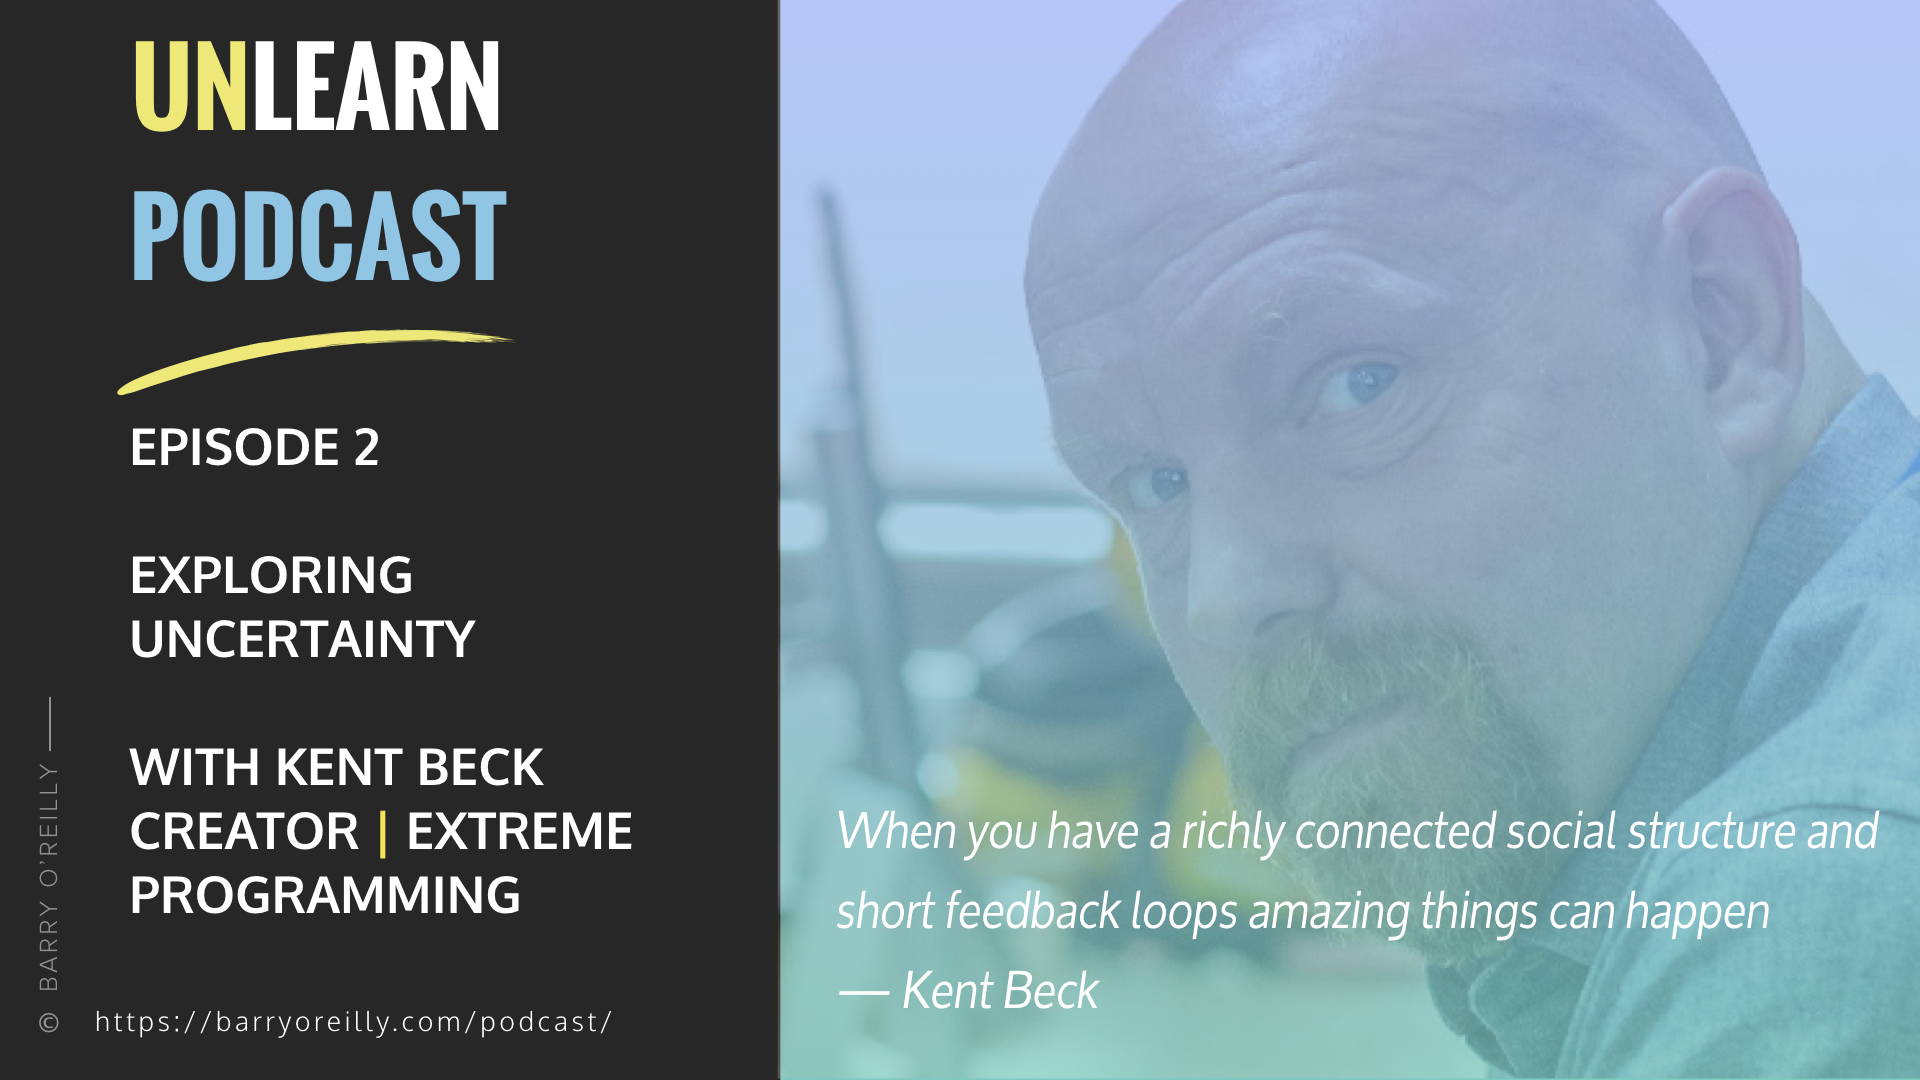 Exploring Uncertainty with Kent Beck